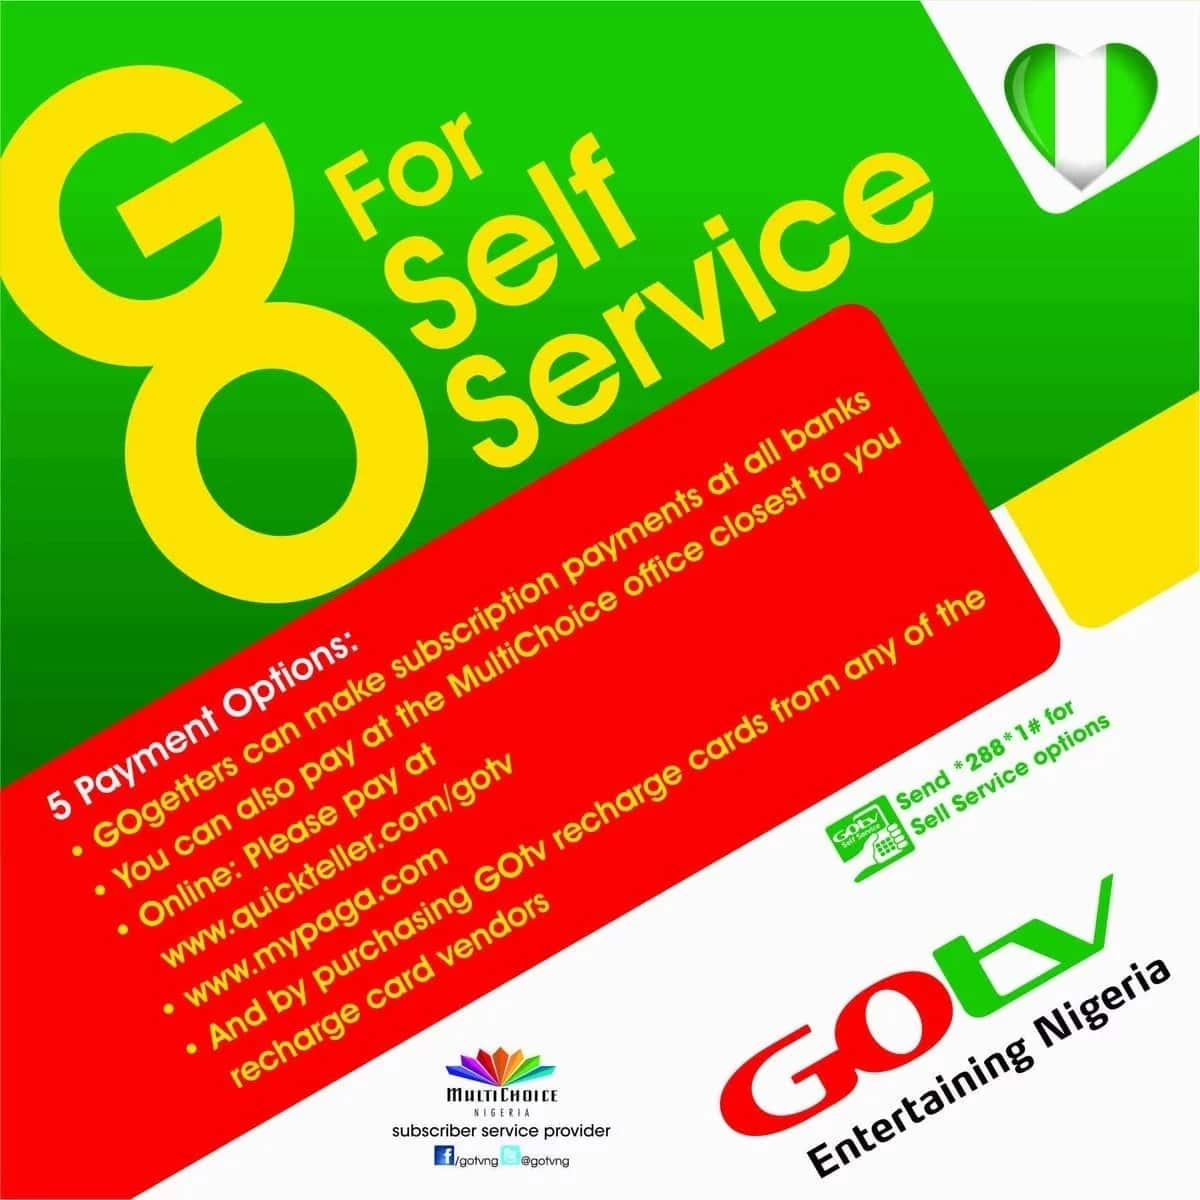 GOtv Kenya: Payment and Packages [Updated] ▷ Tuko co ke